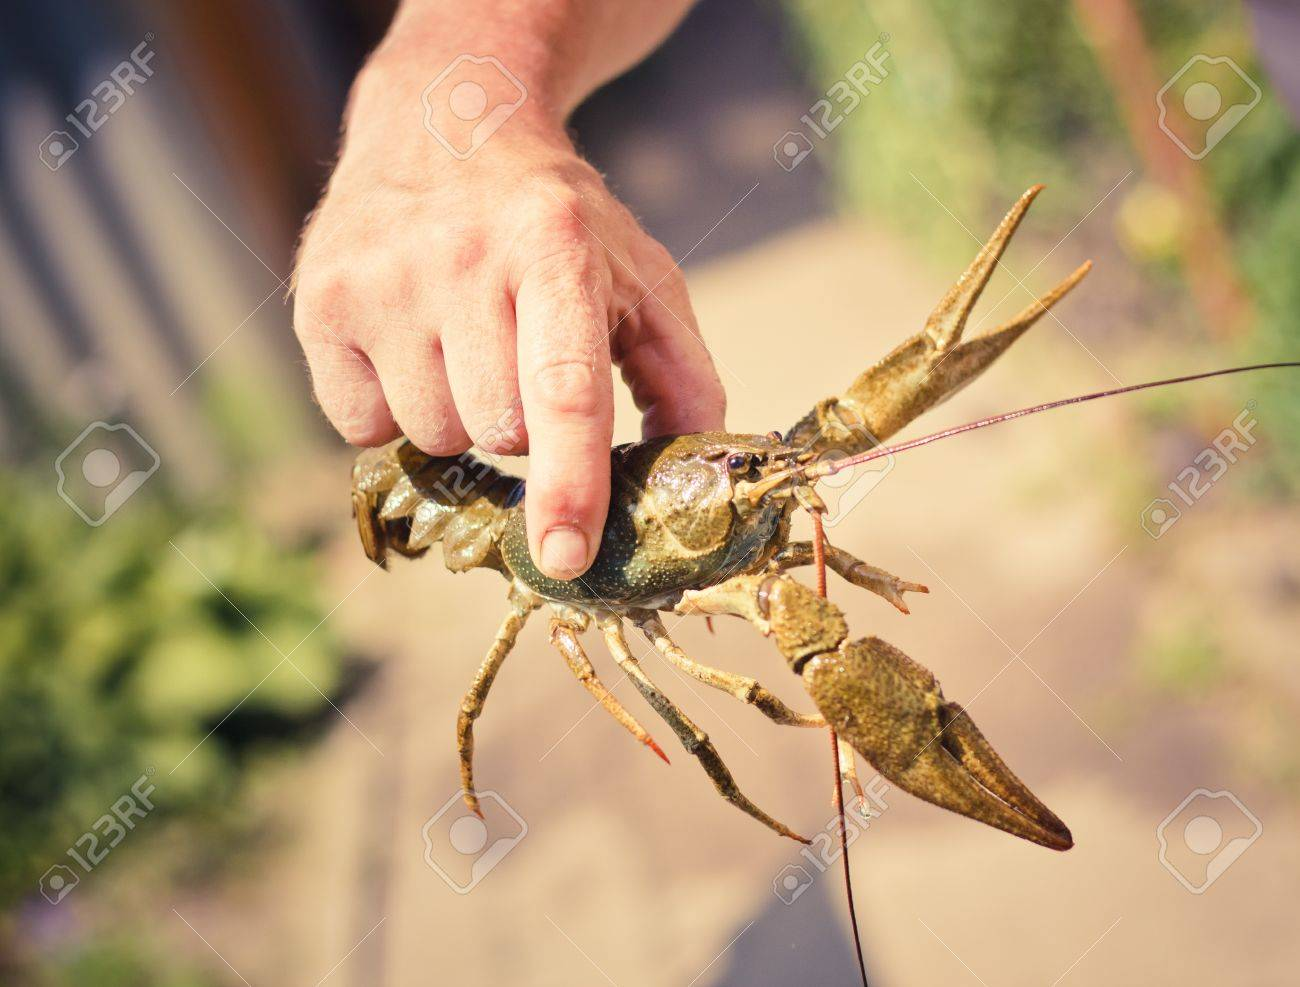 The crawfish in hand near the river. Stock Photo - 11297321